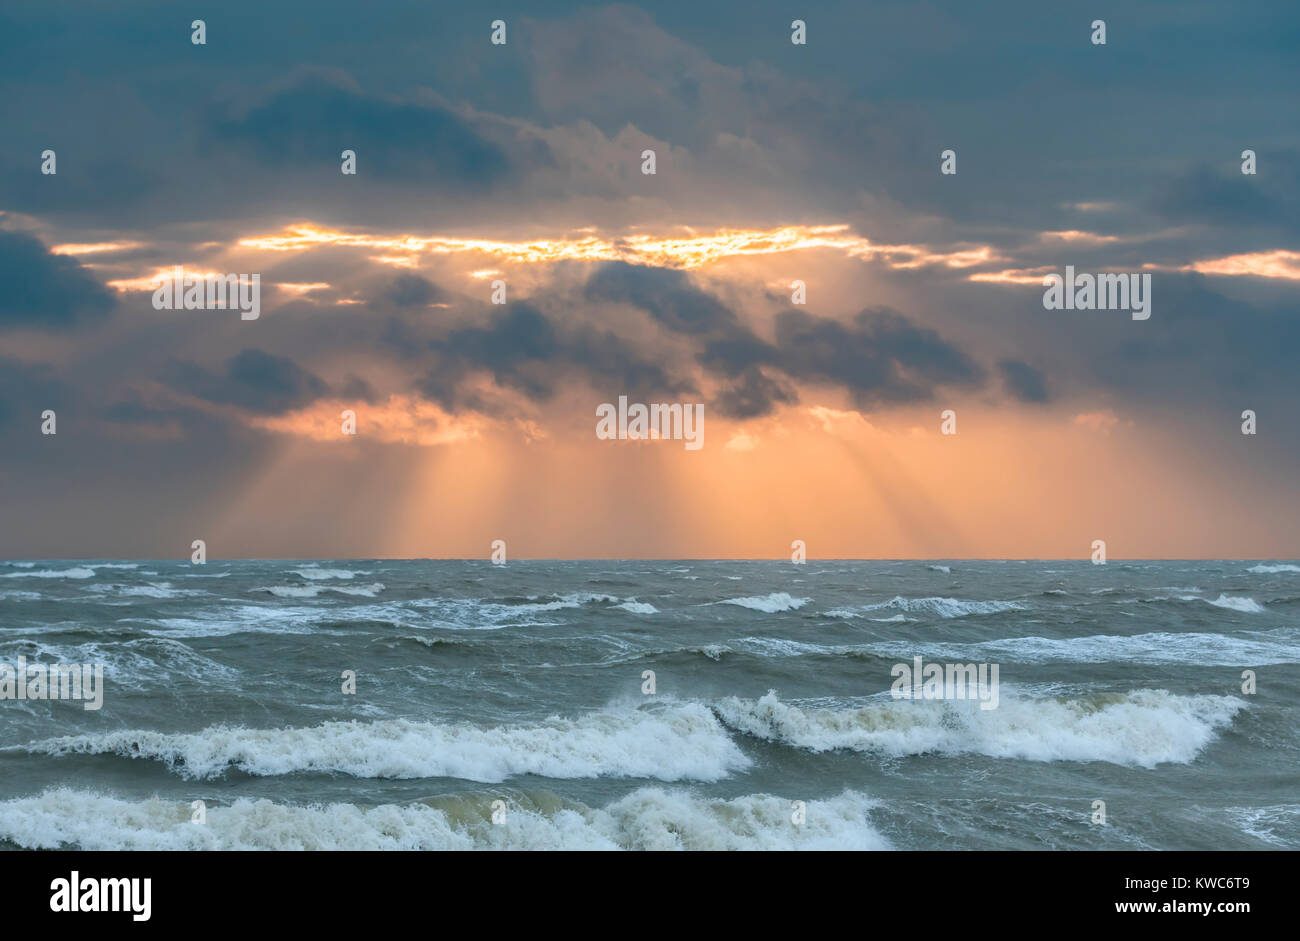 Low sun hidden by clouds with suns rays showing over a rough sea in Winter in the UK. - Stock Image